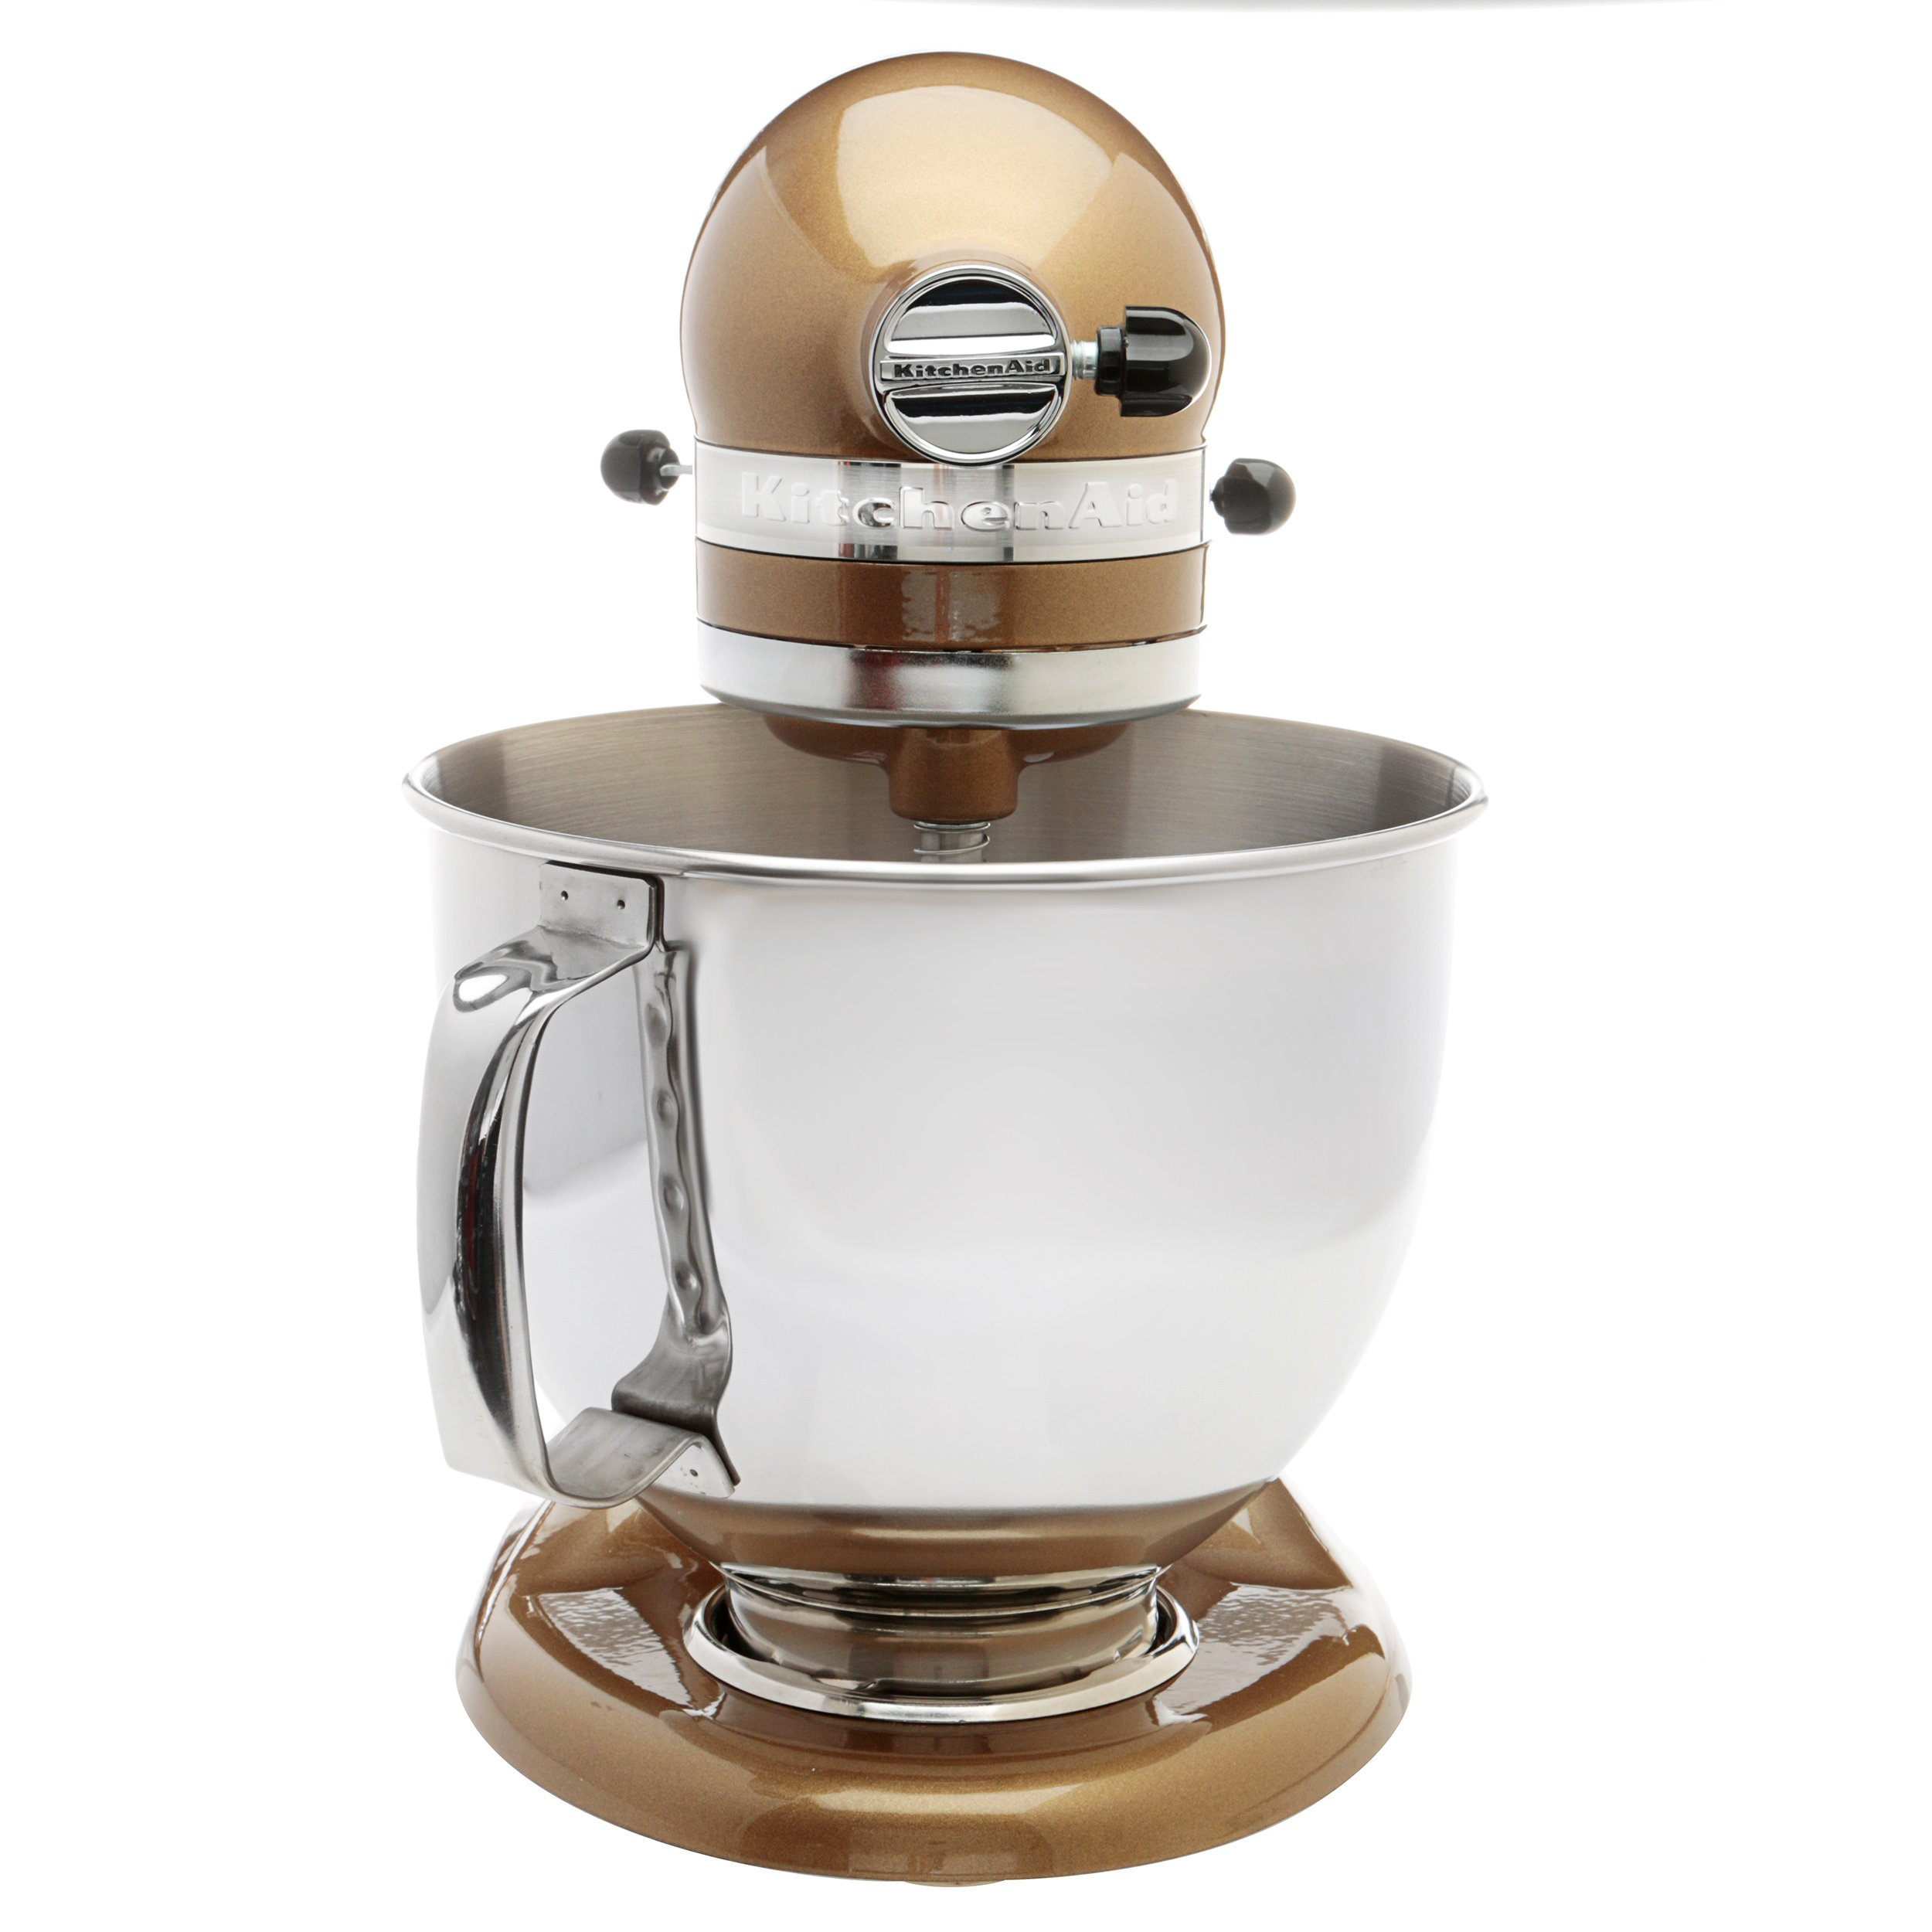 KitchenAid-Refurbished-Artisan-Series-5-Quart-Tilt-Head-Stand-Mixer-RRK150 thumbnail 82